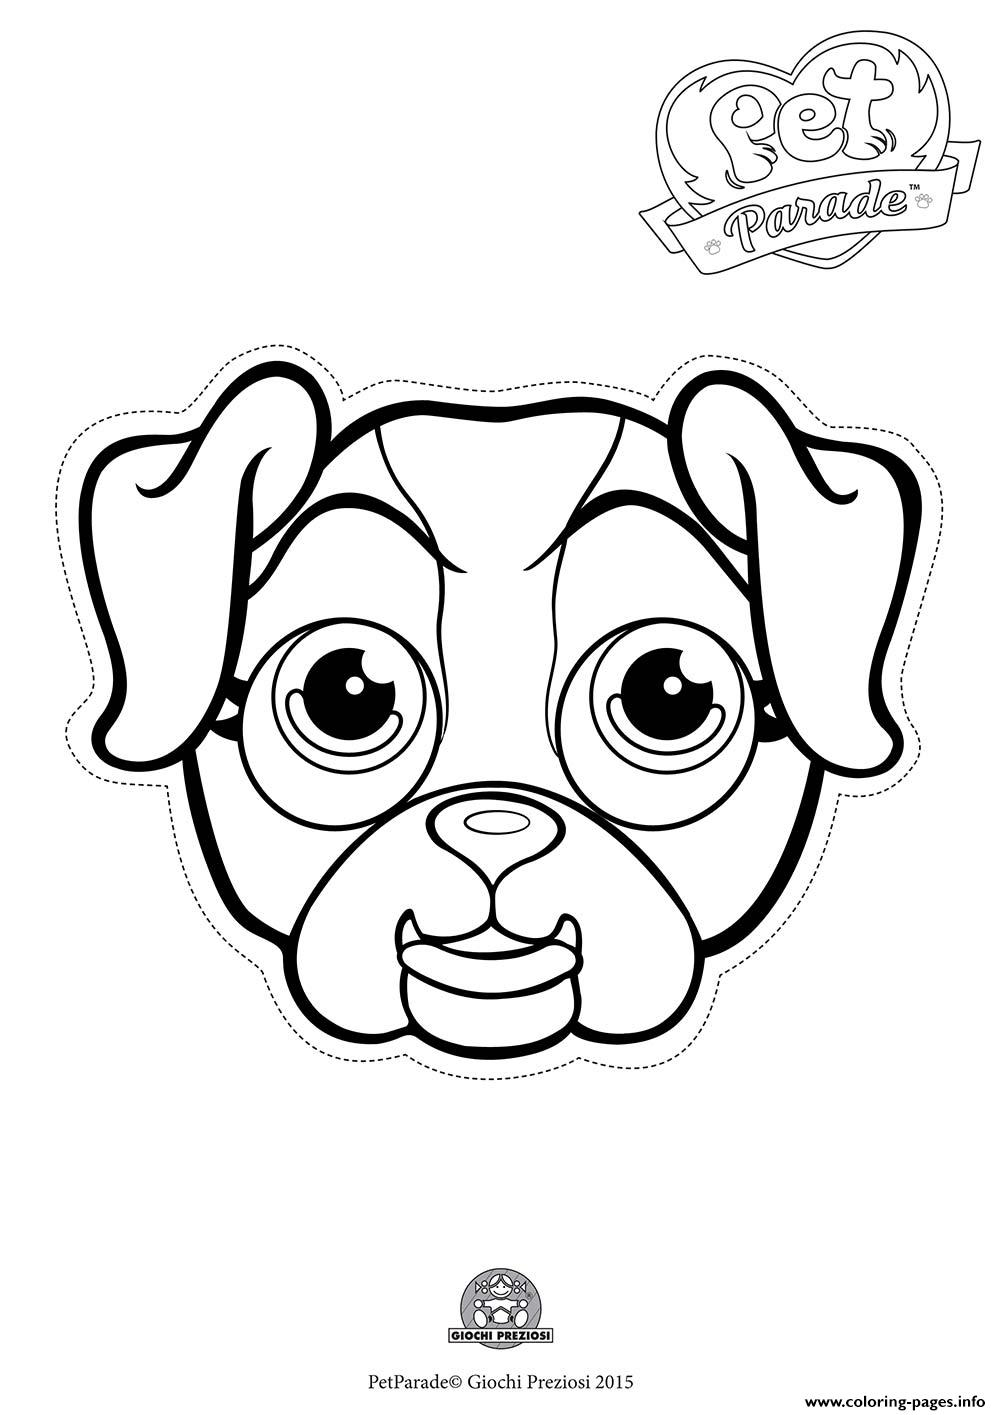 kawaii dog coloring pages free printable cute dog coloring pages collection images dog kawaii coloring pages